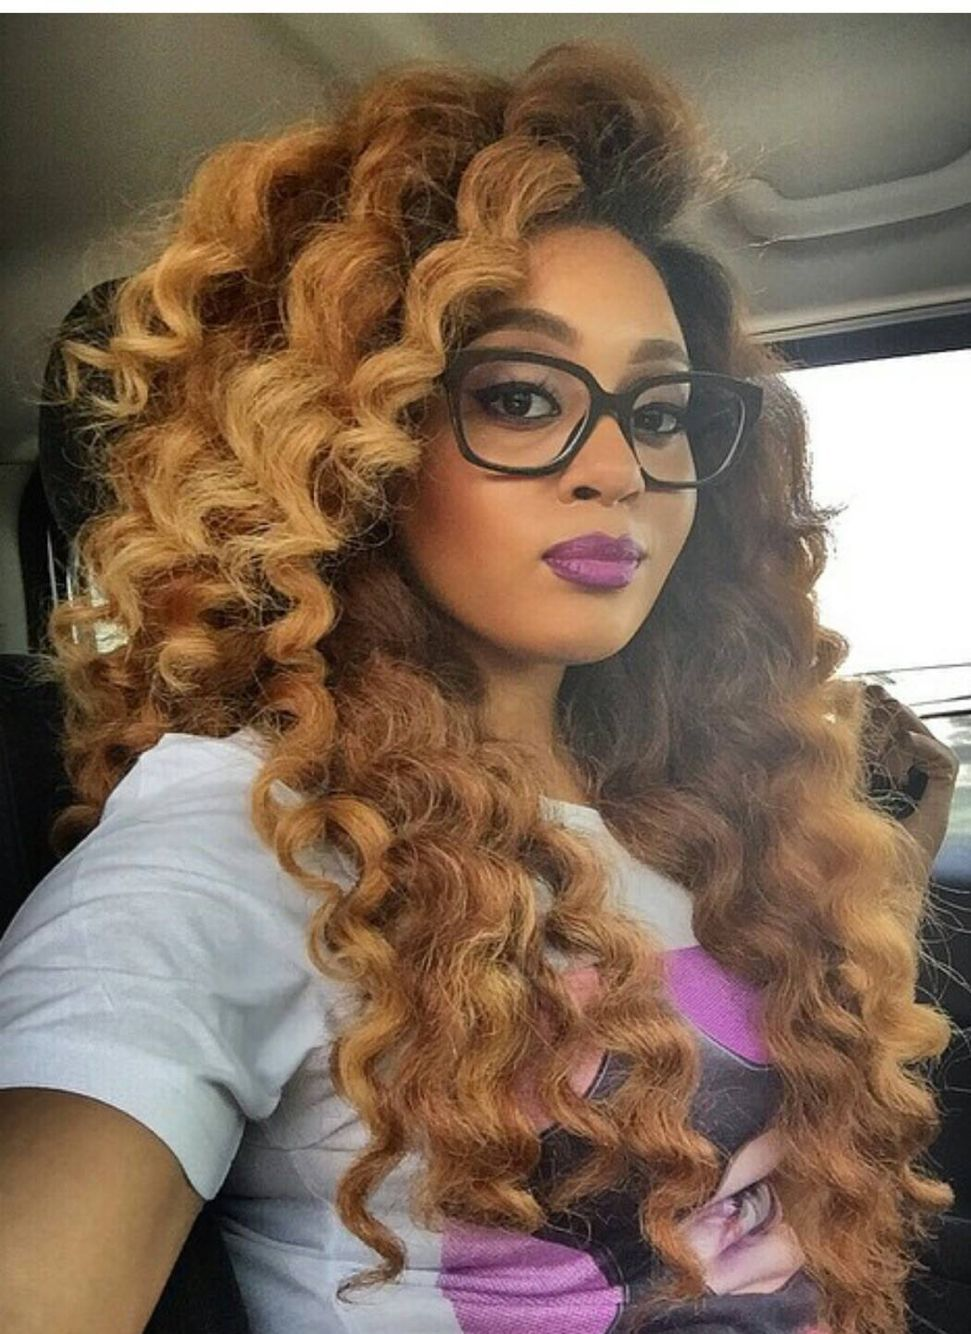 I wonder if this look can be achieved with crochet braids